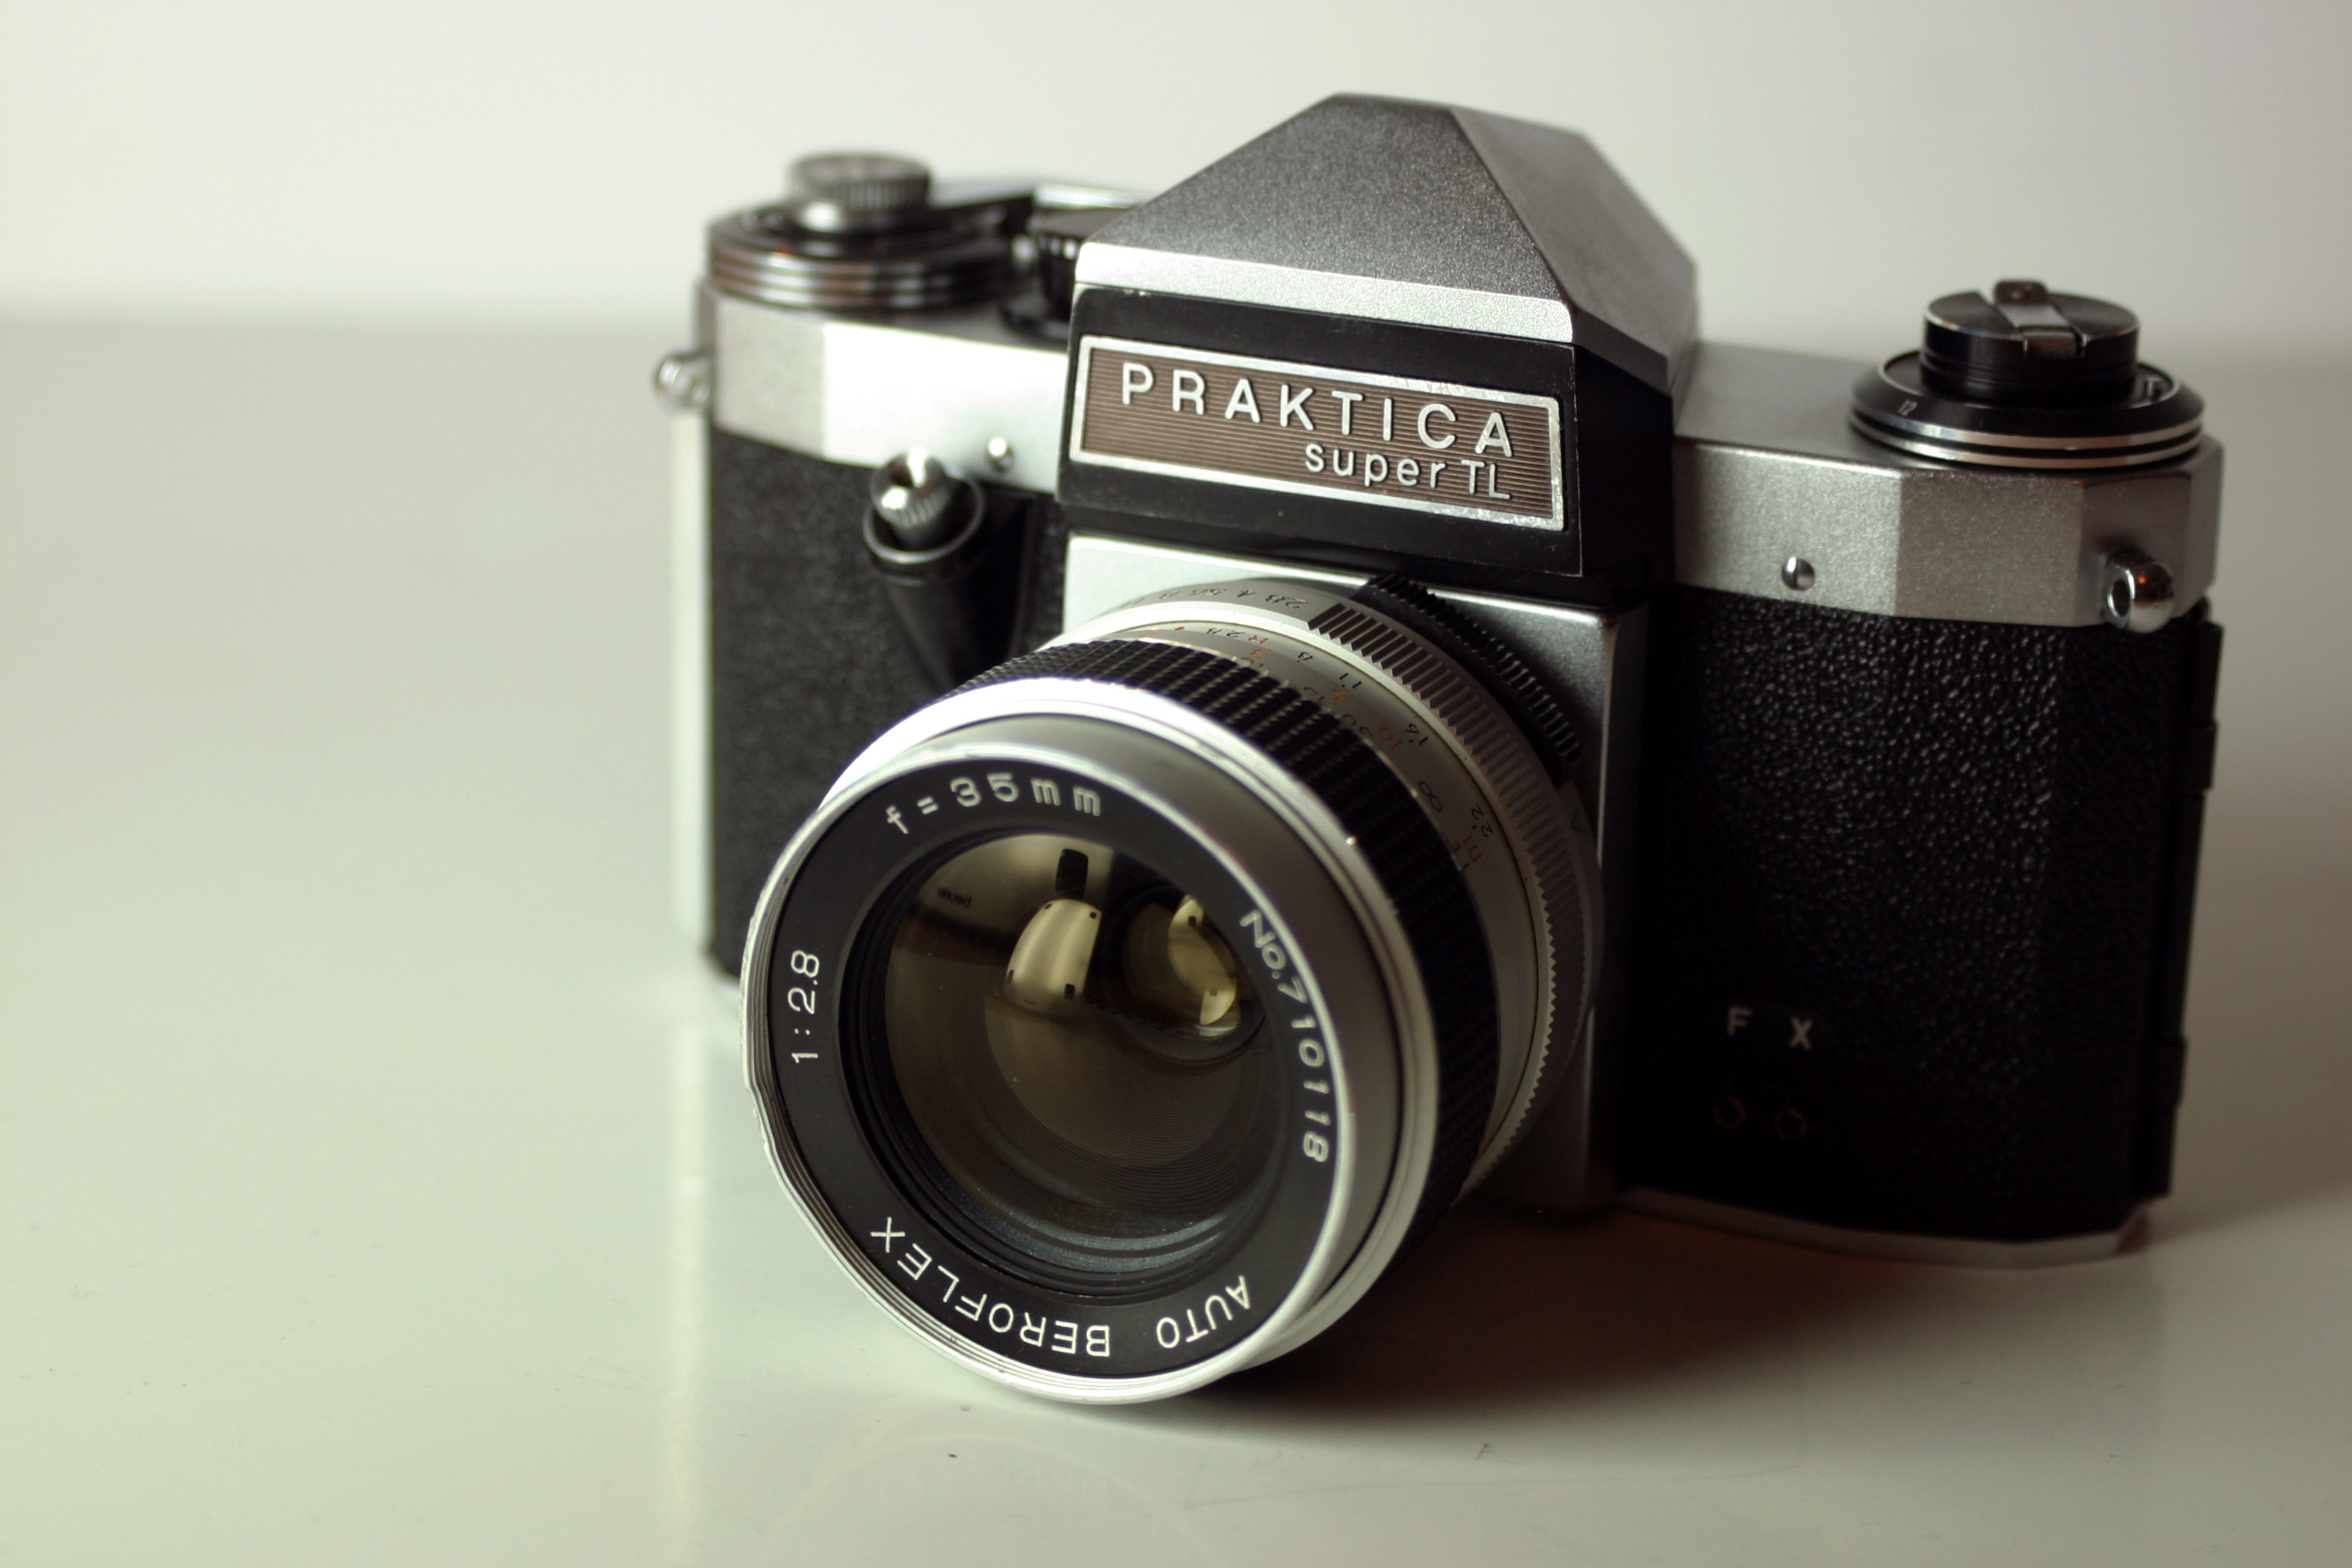 File:praktica super tl.jpg wikimedia commons